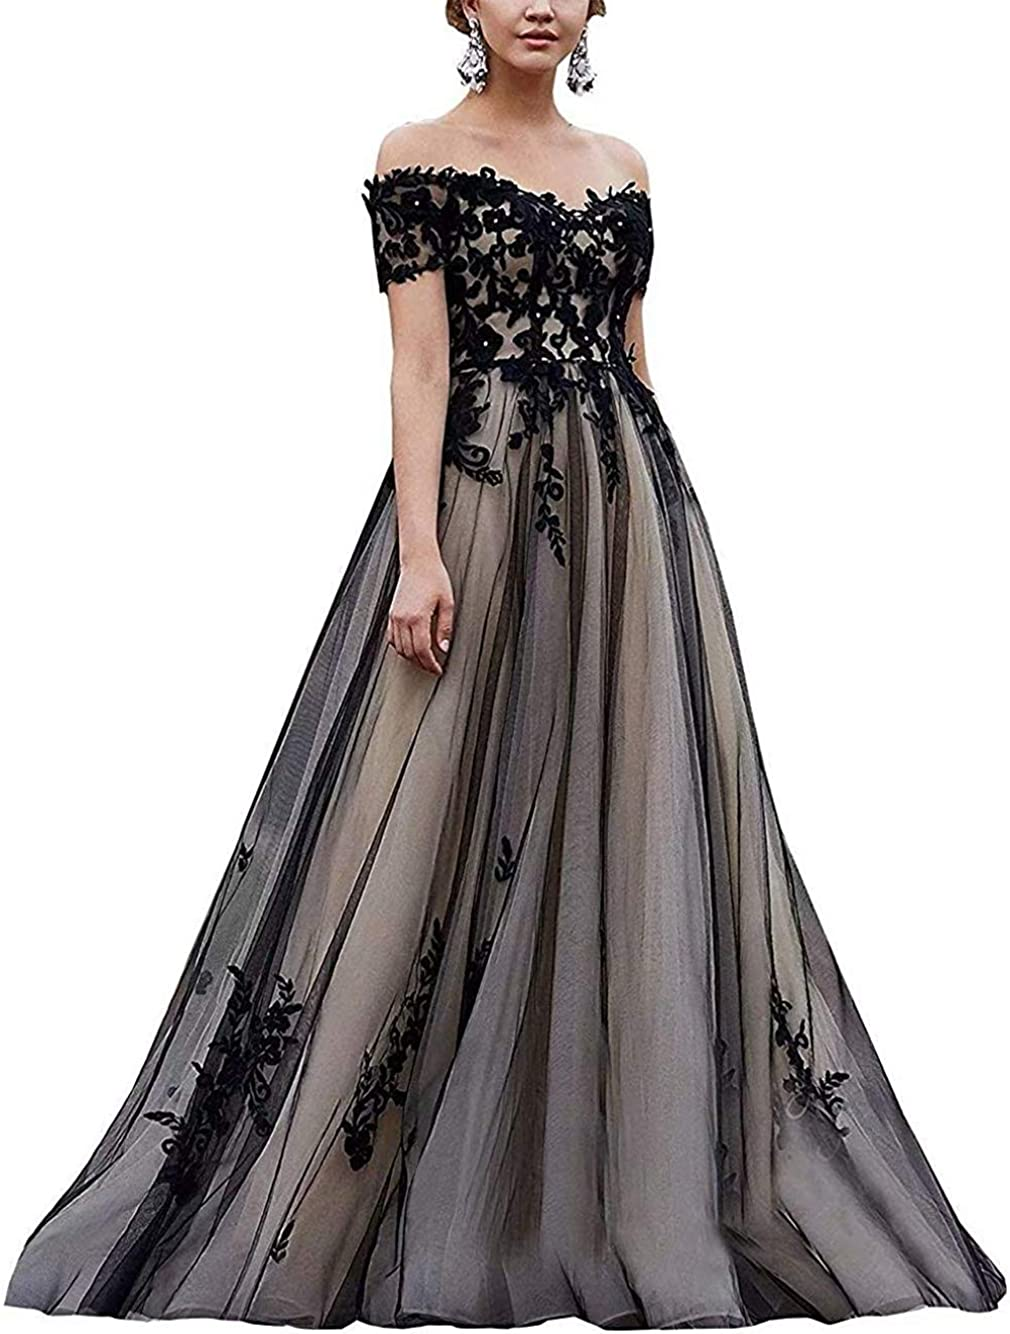 Melisa Off The Shoulder Long Wedding Dresses for Bride with Train Lace Applique Sweetheart Bridal Ball Gowns